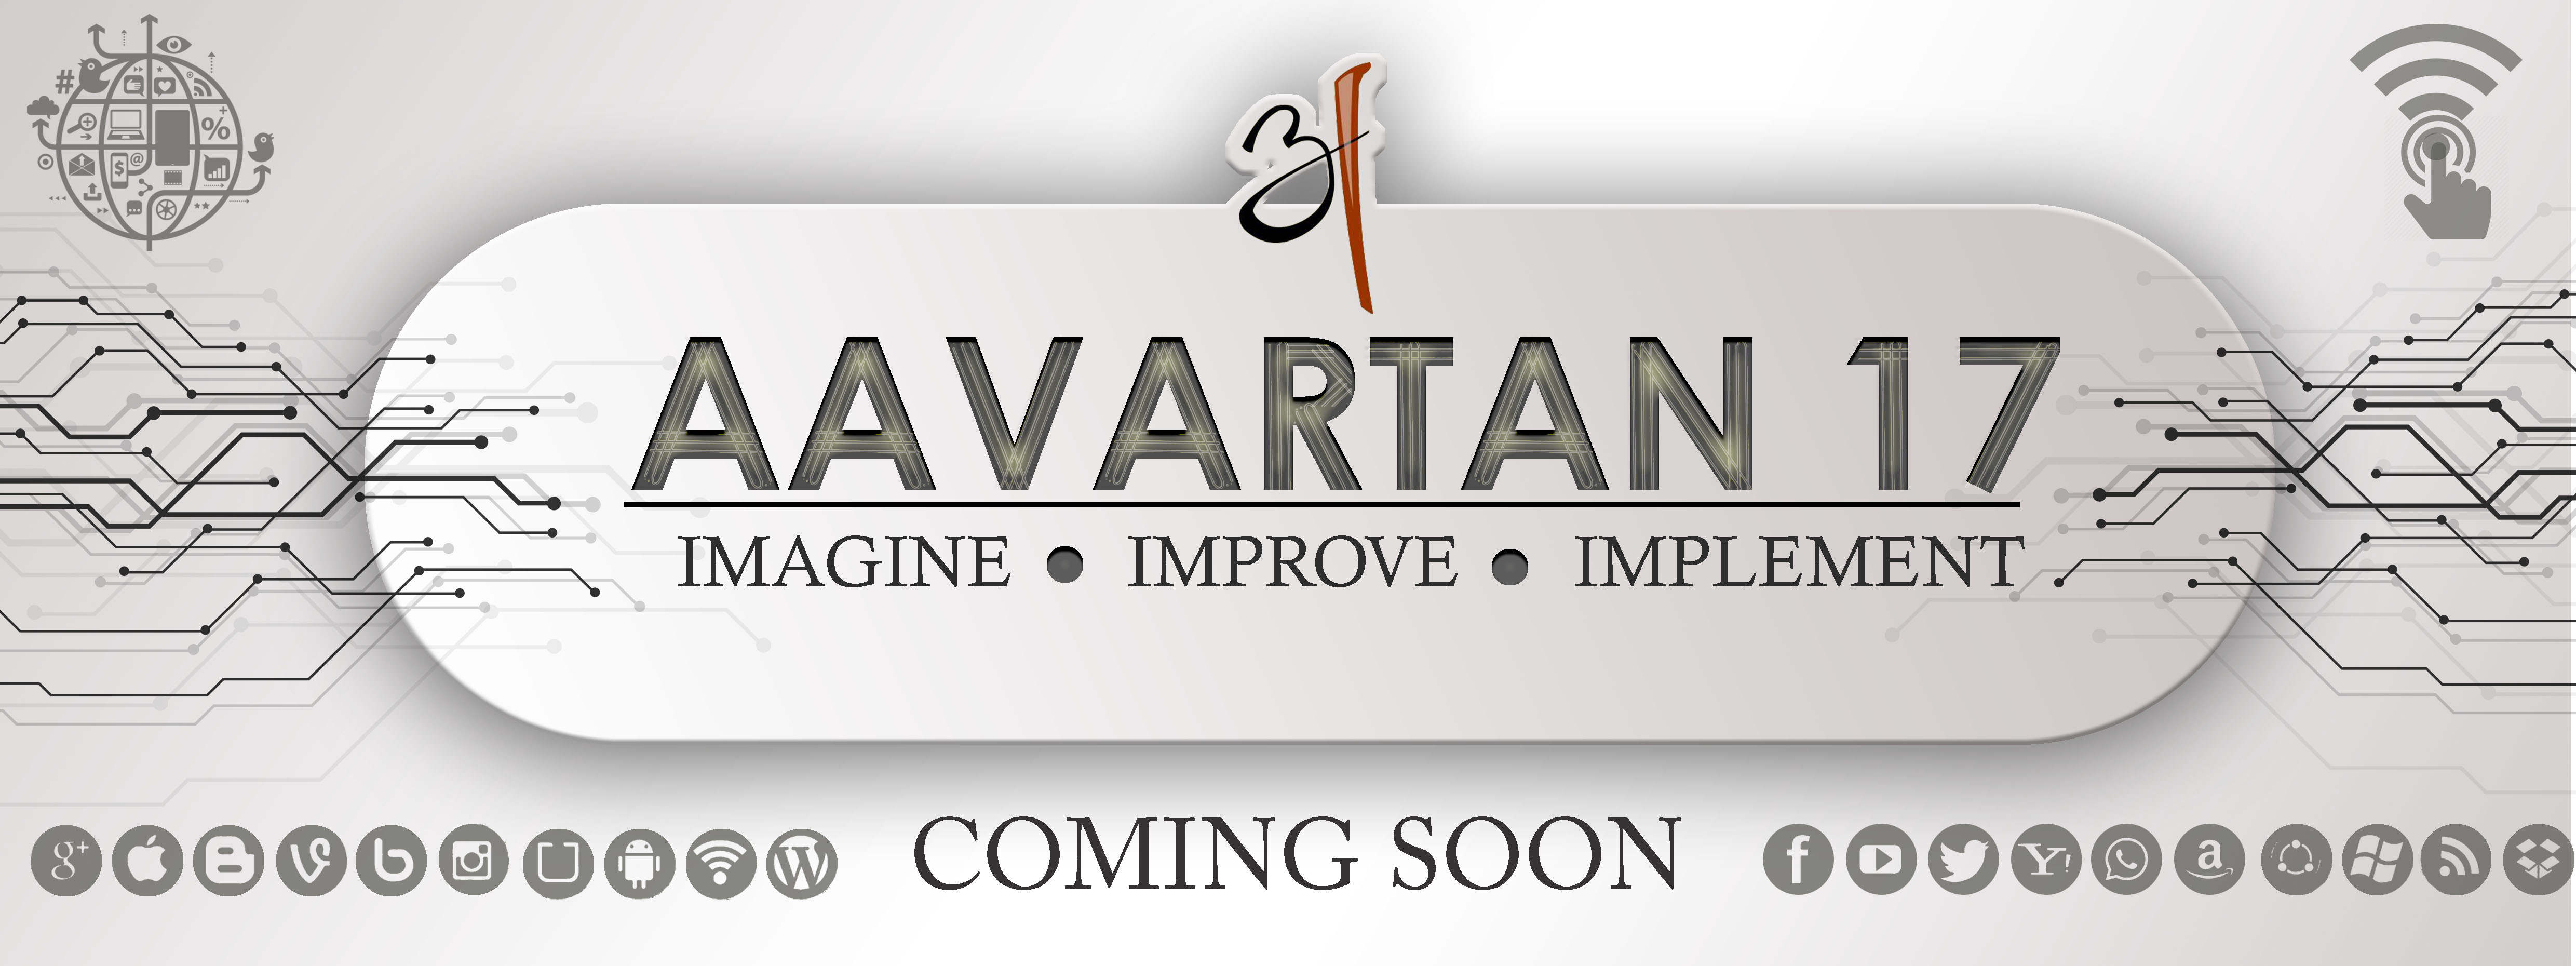 Aavartan 2017 - Technical Fest in NIT Raipur from October 7-8, 2017